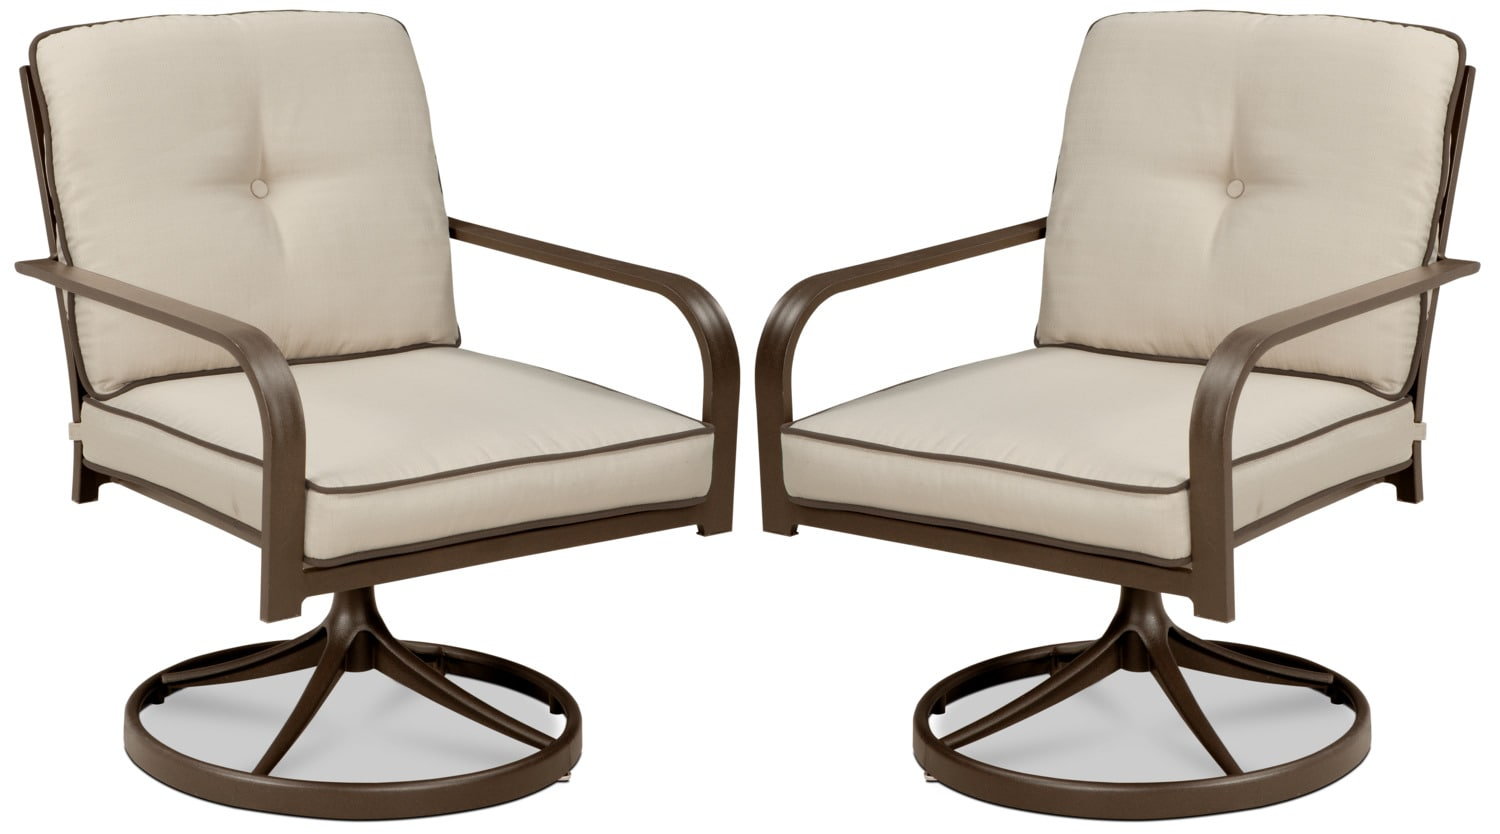 Predmore Swivel Lounge Chair, Set of 2